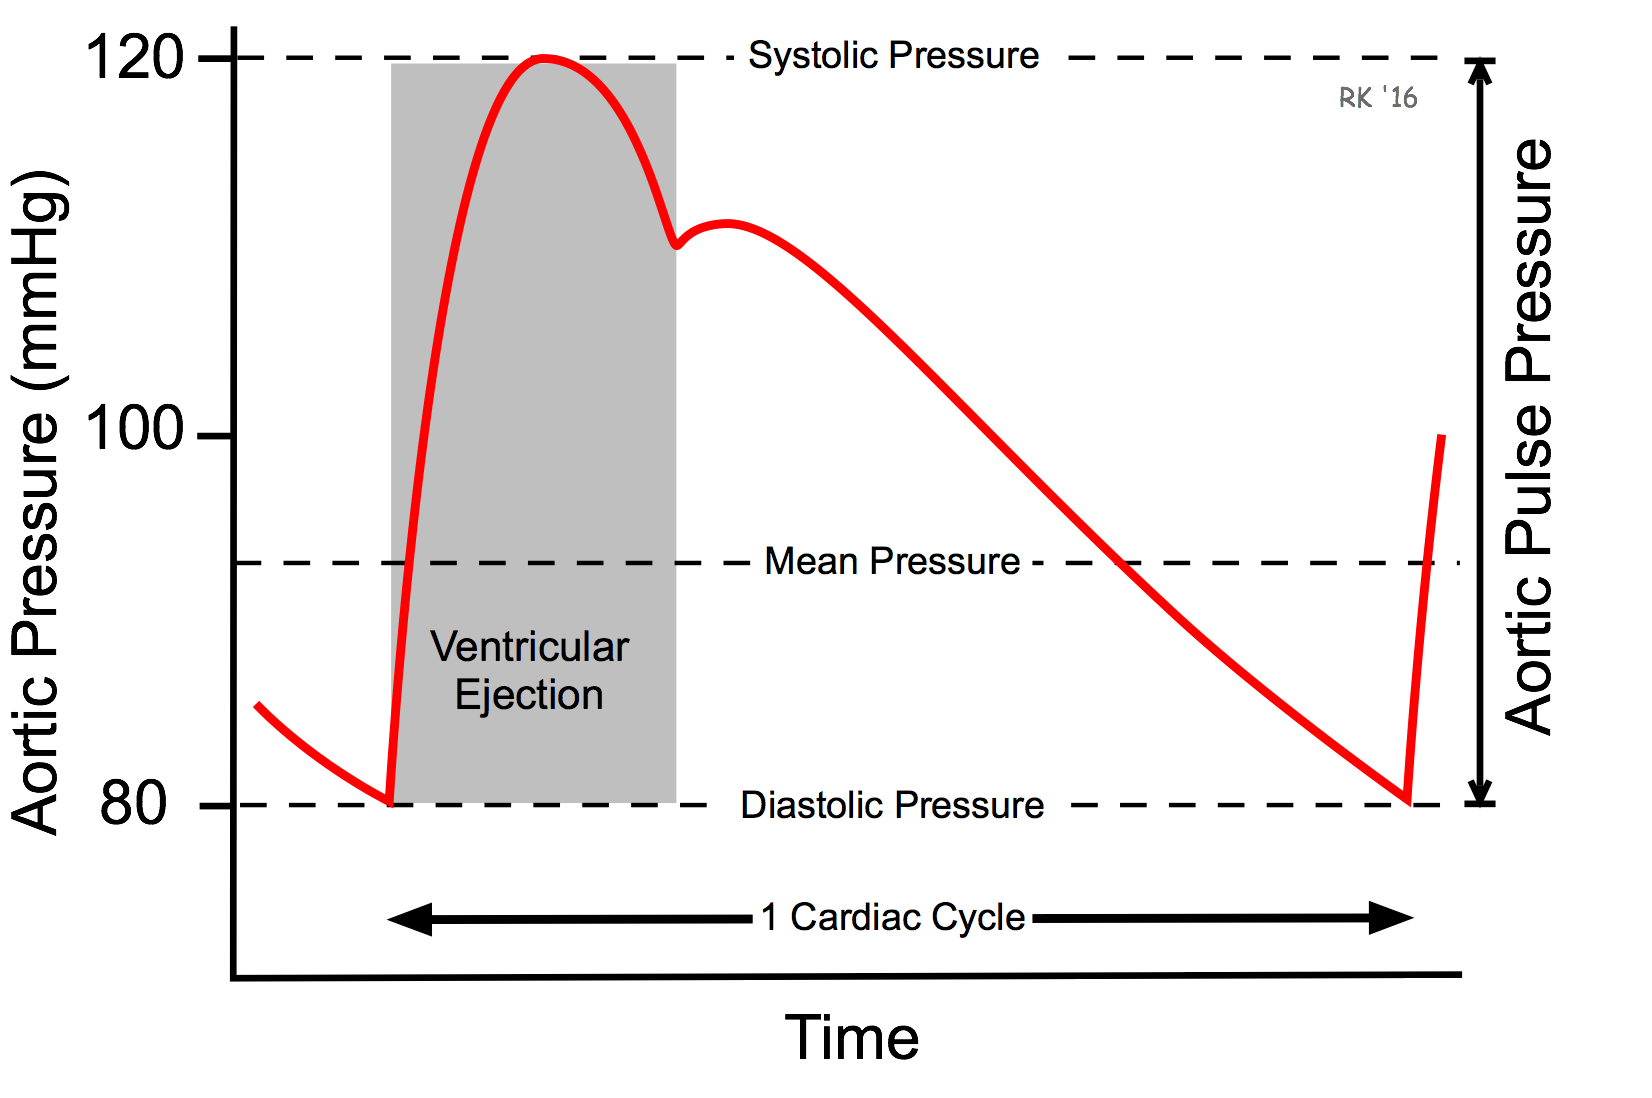 Cv physiology arterial and aortic pulse pressure